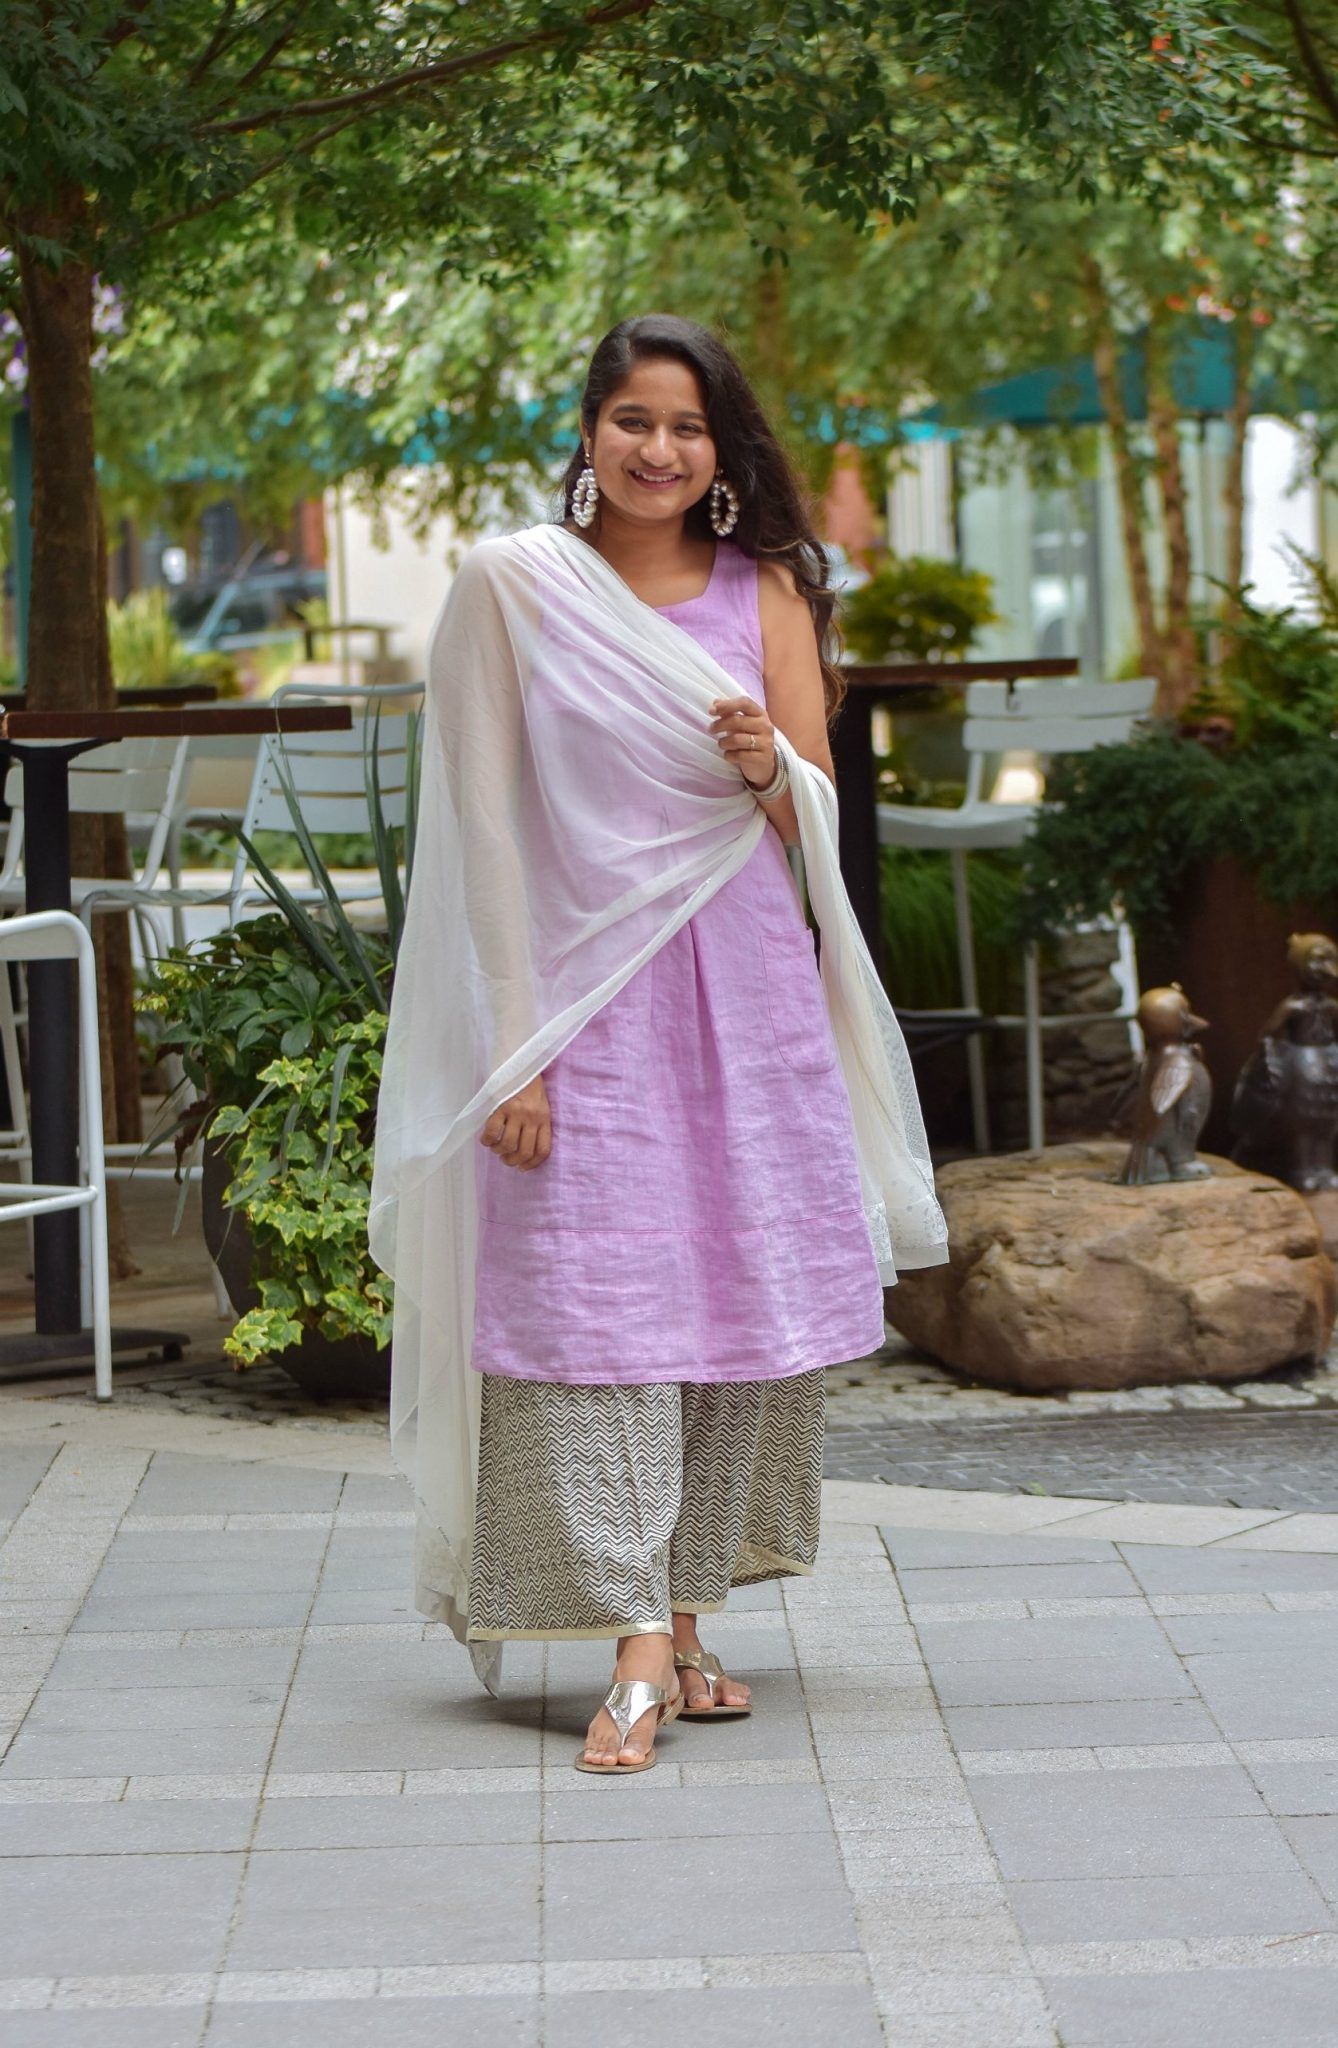 Wearing J.Jill Pleated Knit A-Line Dress, Wide leg pant, Pearl large hoops, White dupatta2 | Indo Western by popular Maryland modest fashion blog, Dreaming Loud: image of a woman wearing an Indo Wester outfit with a purple linen dress, culottes, sliver sandals, pearl hoop earrings, and a silk dupatta.